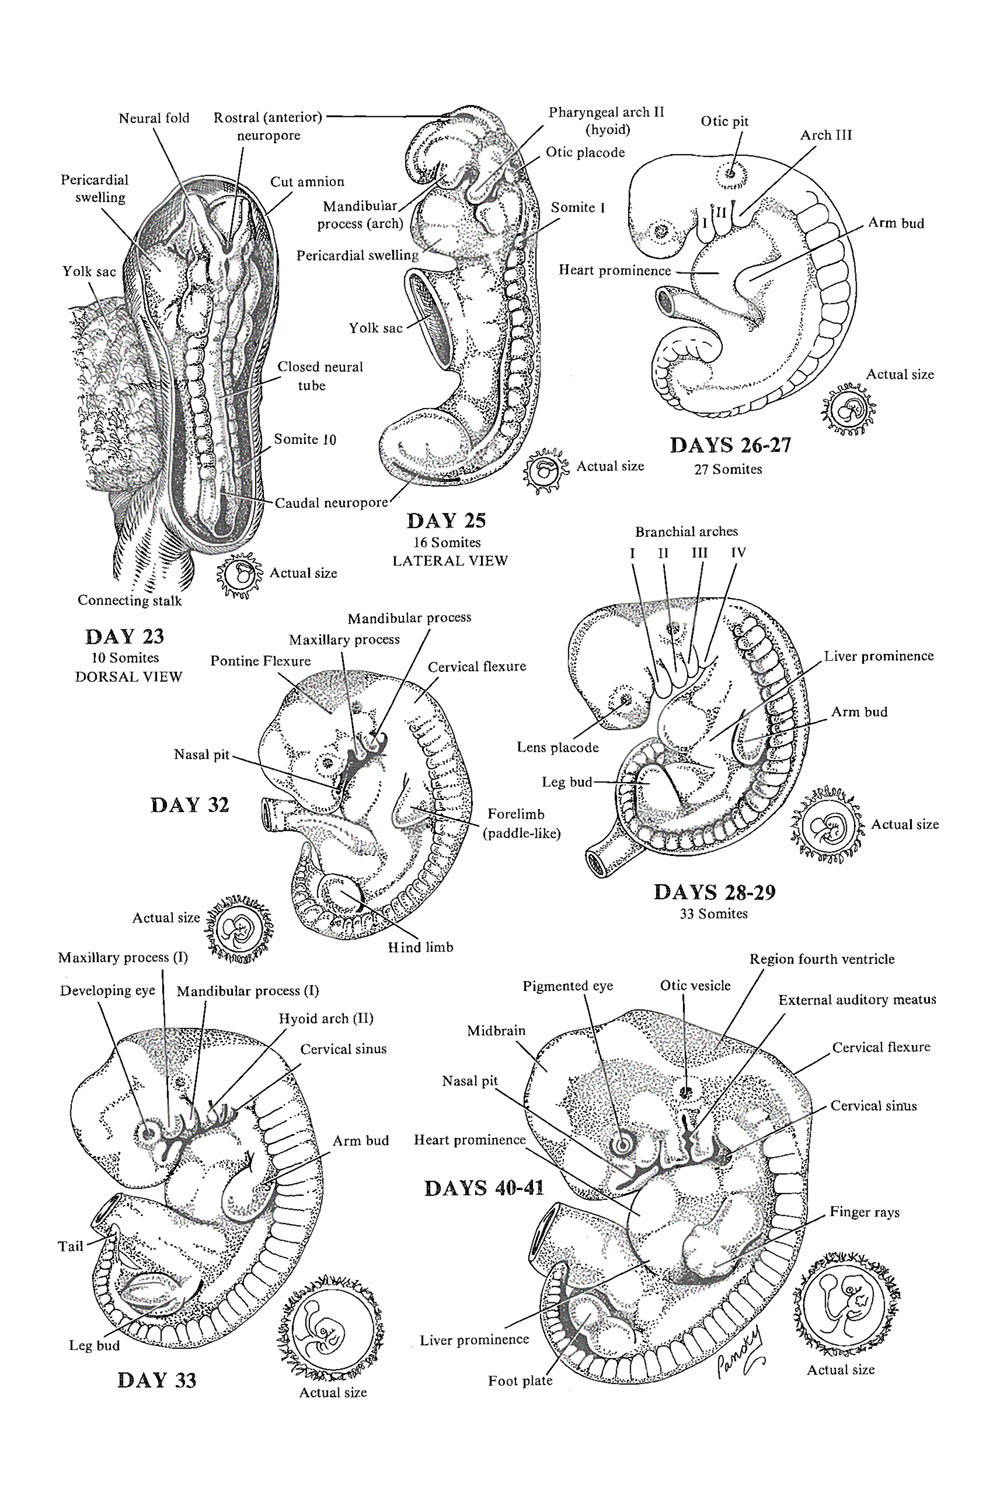 Weeks 4 to 6 of development - The embryonic period